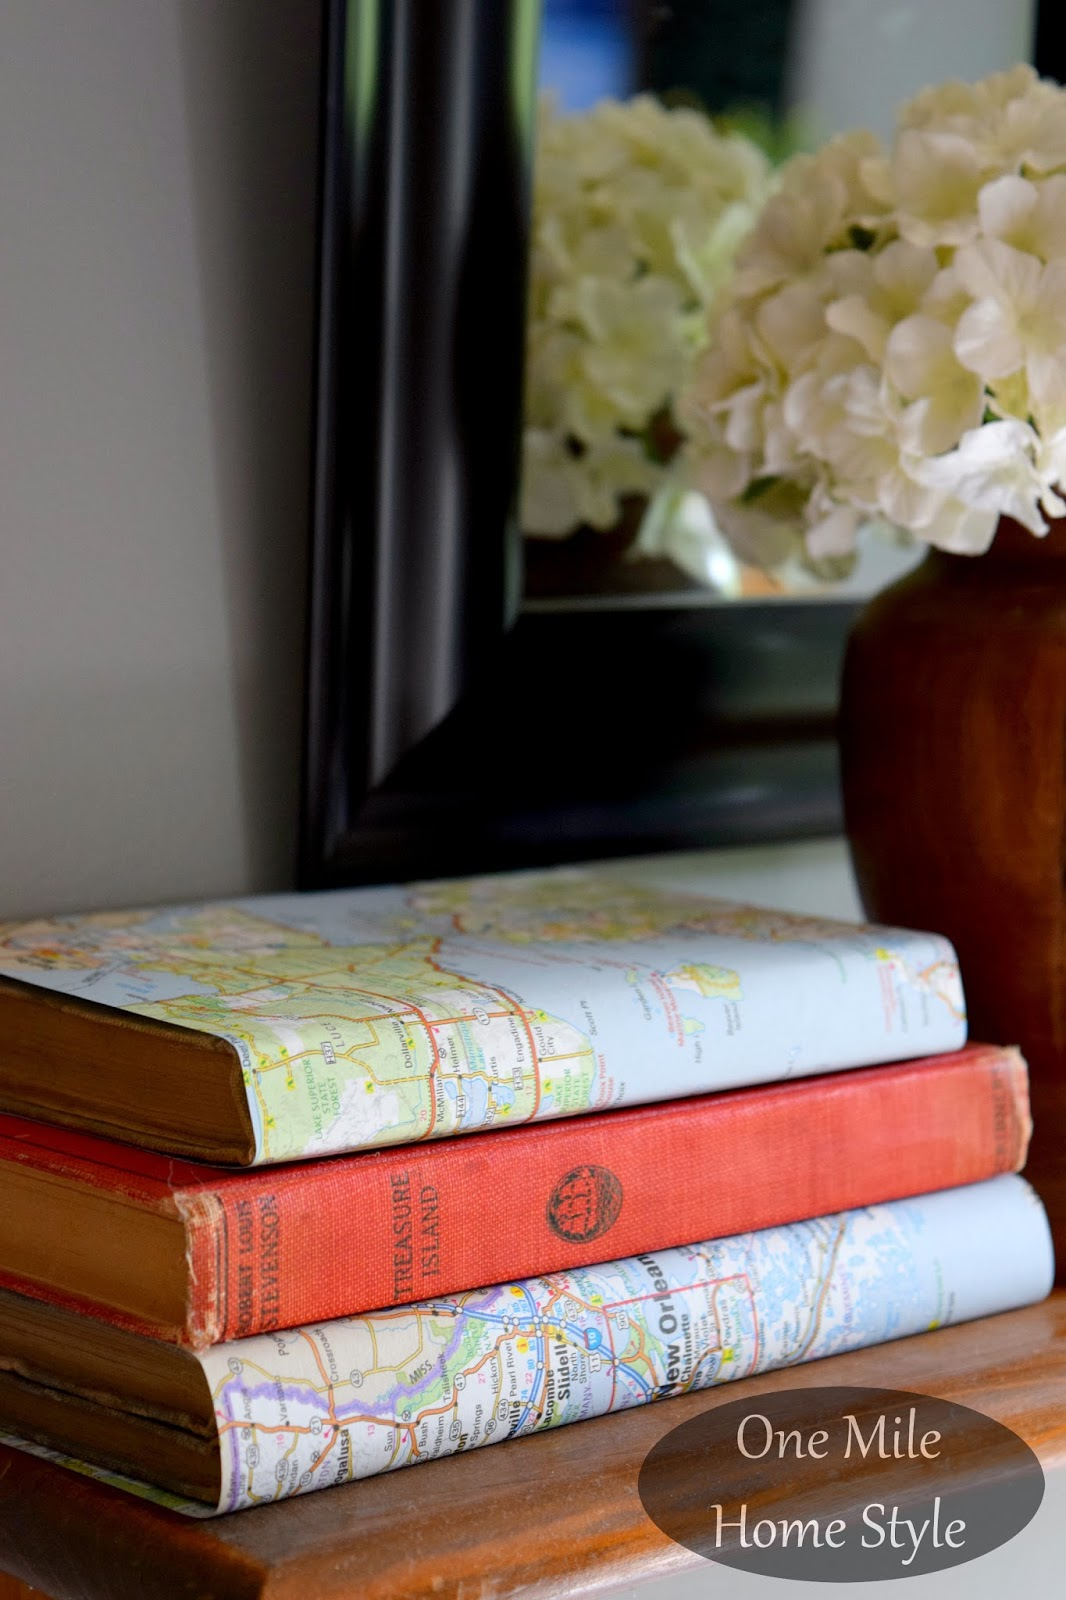 Change Book Cover Diy : Simple map book covers saturday quick change